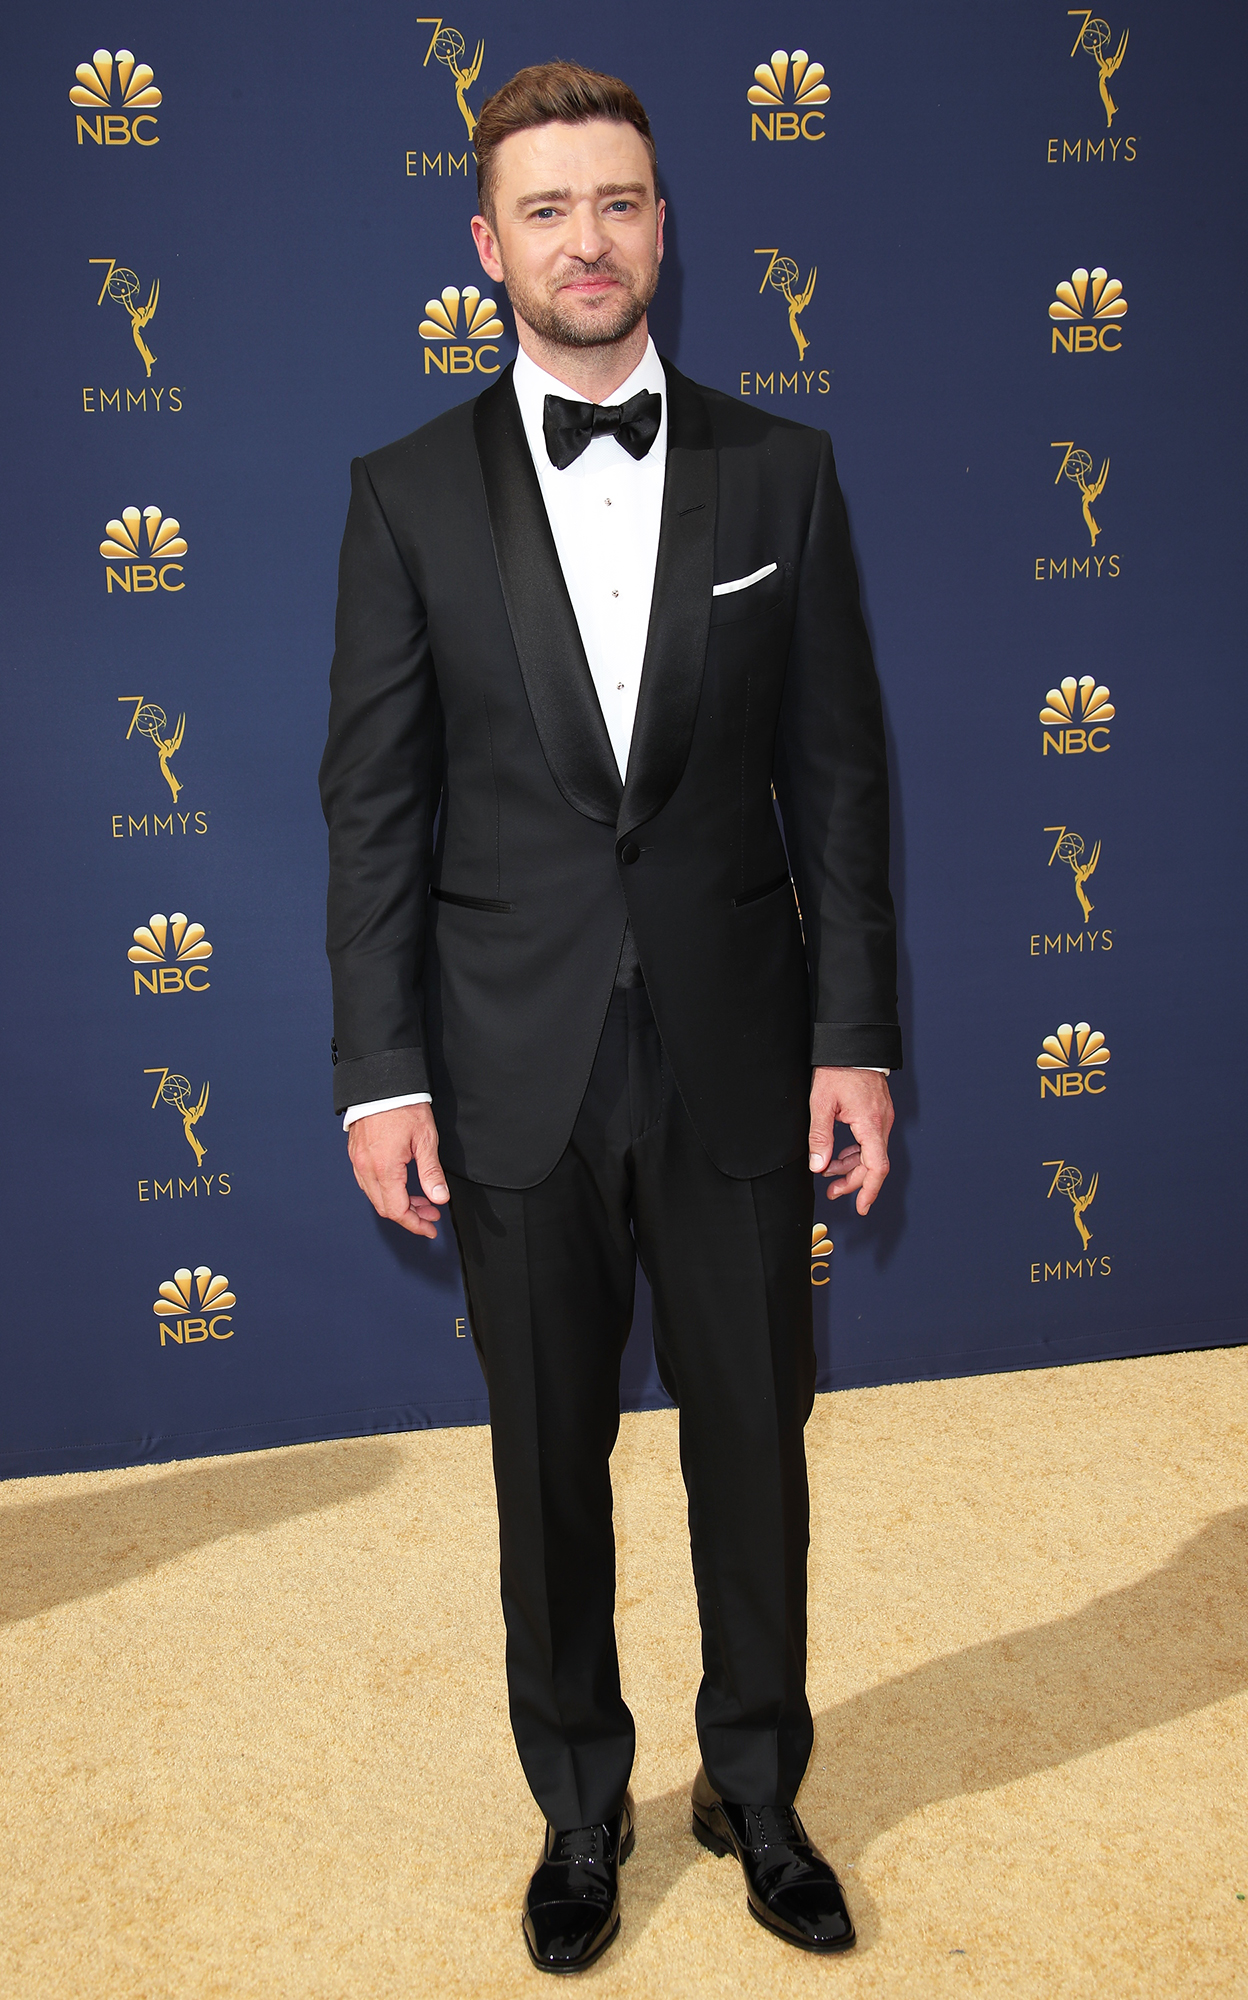 Hottest Guys in Suits - 2018 Edition - Supporting wife Jessica Biel who was nominated for her role in The Sinner at the Emmys, the singer was bringing sexy back in a Tom Ford suit.